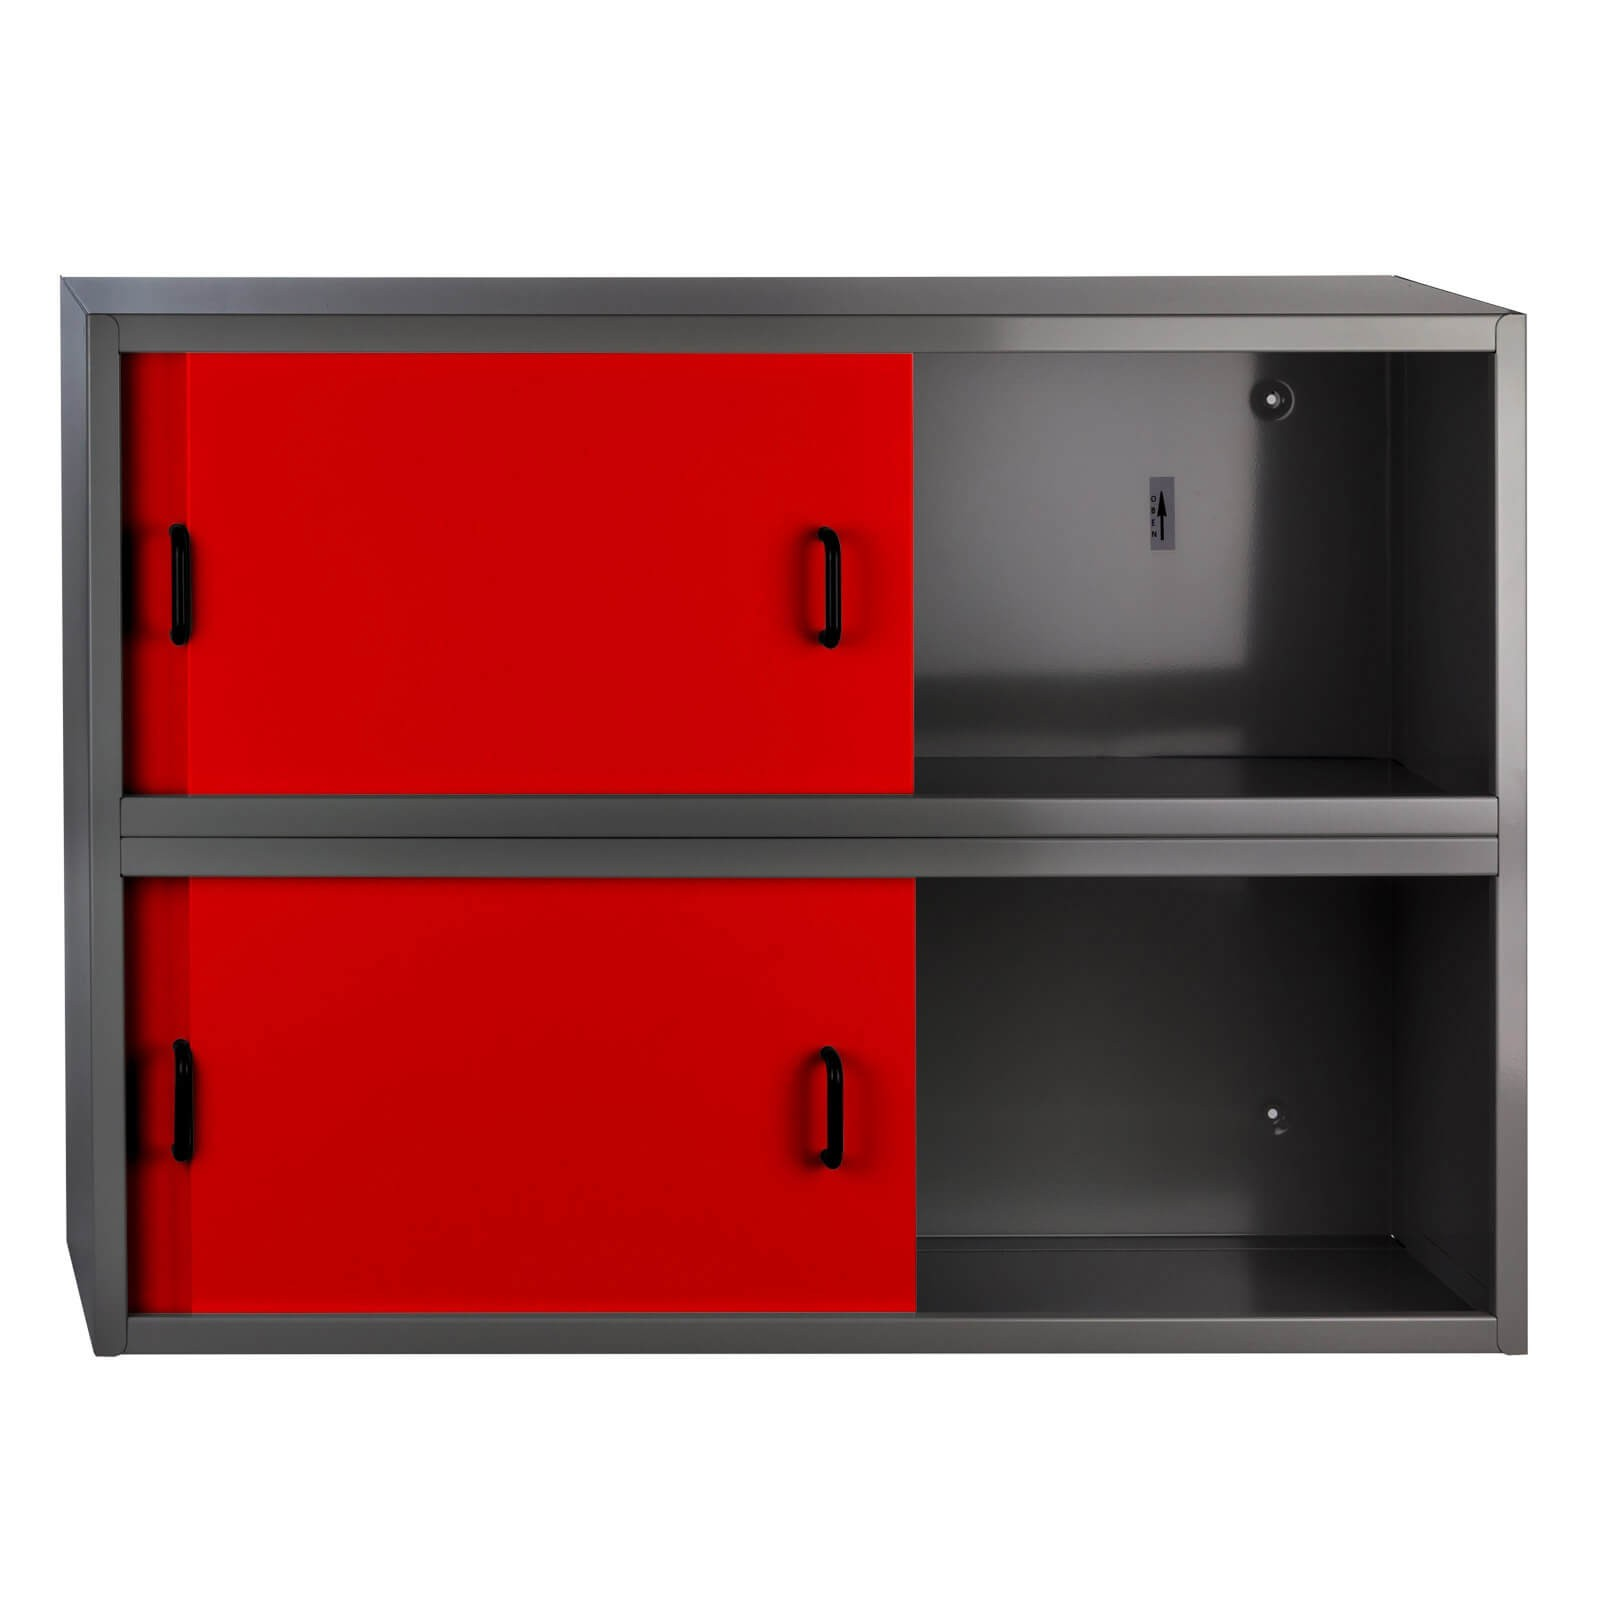 metall h ngeschrank wandschrank fernando 4 schiebet ren rot anthrazit. Black Bedroom Furniture Sets. Home Design Ideas